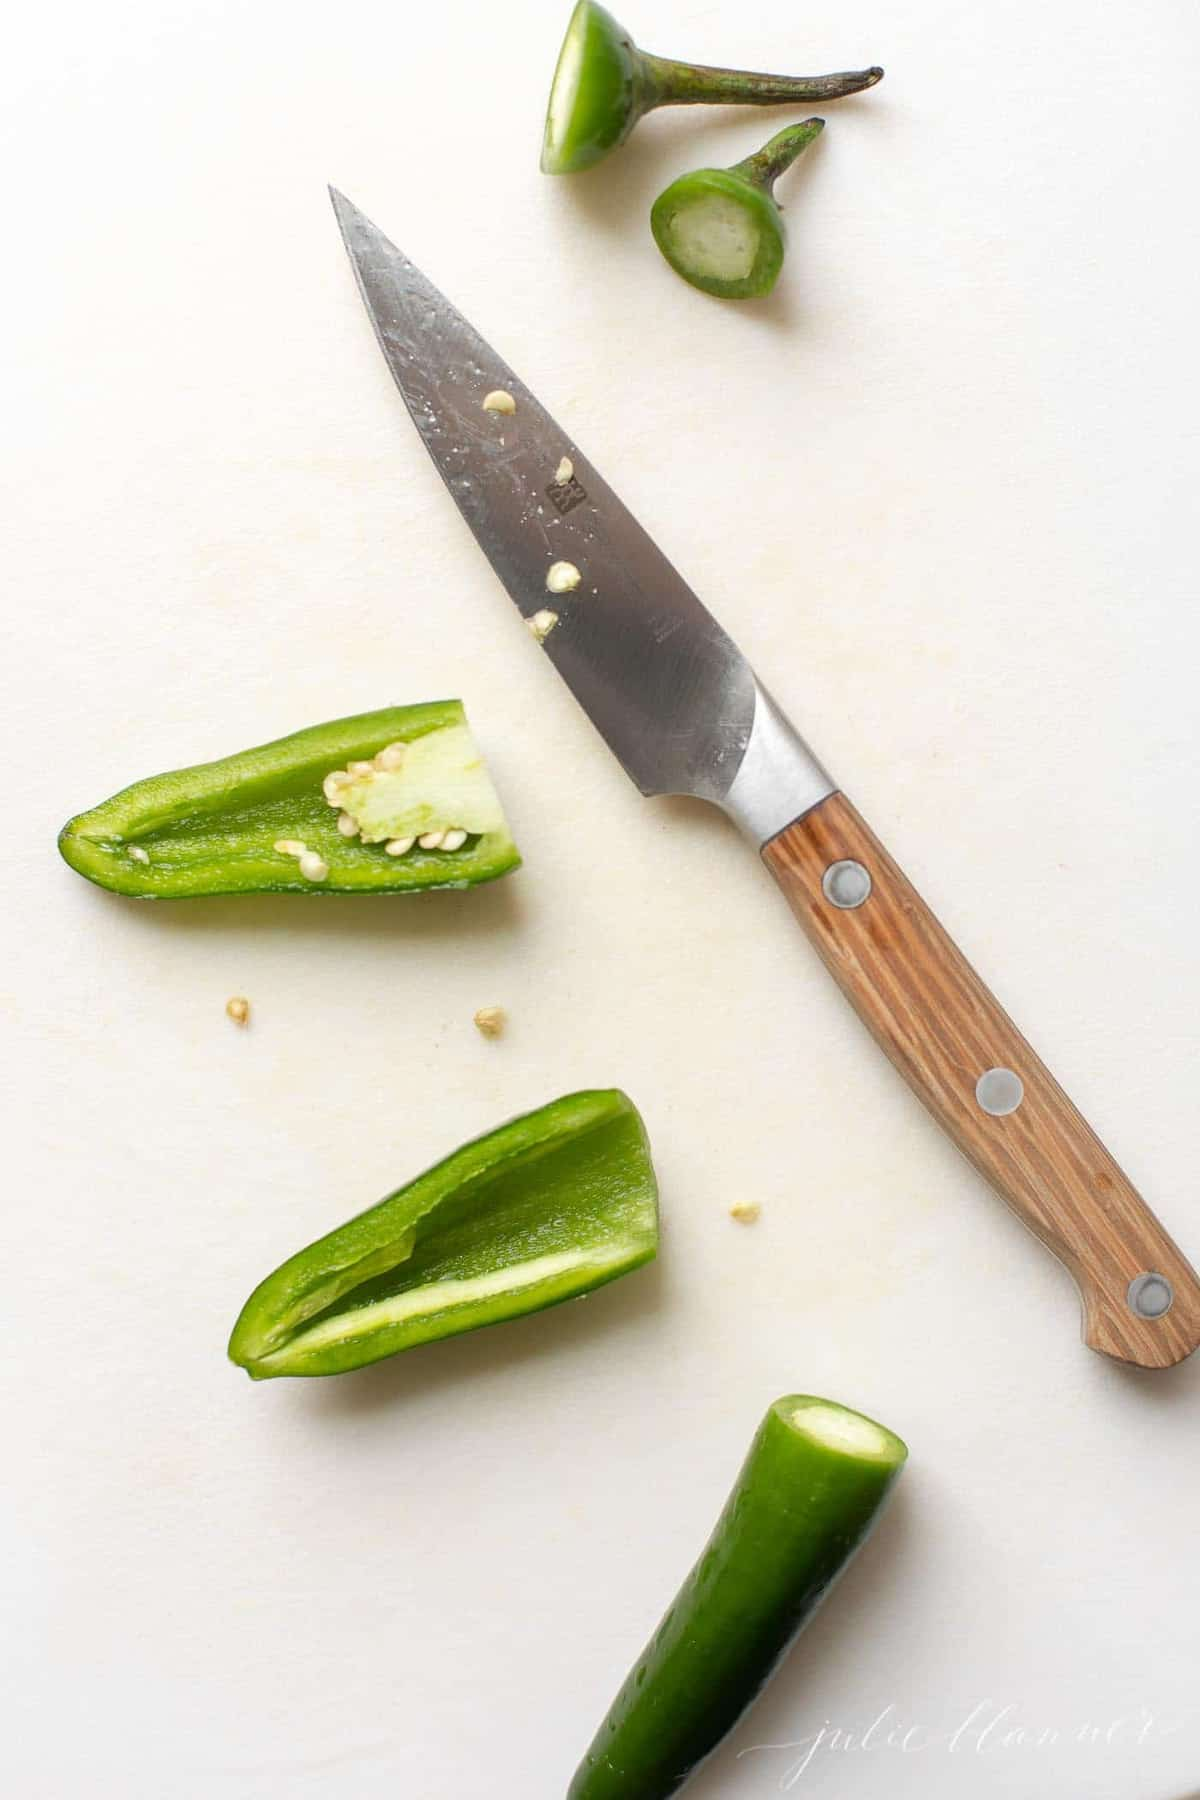 A white surface with a sliced jalapeno, knife to the side.